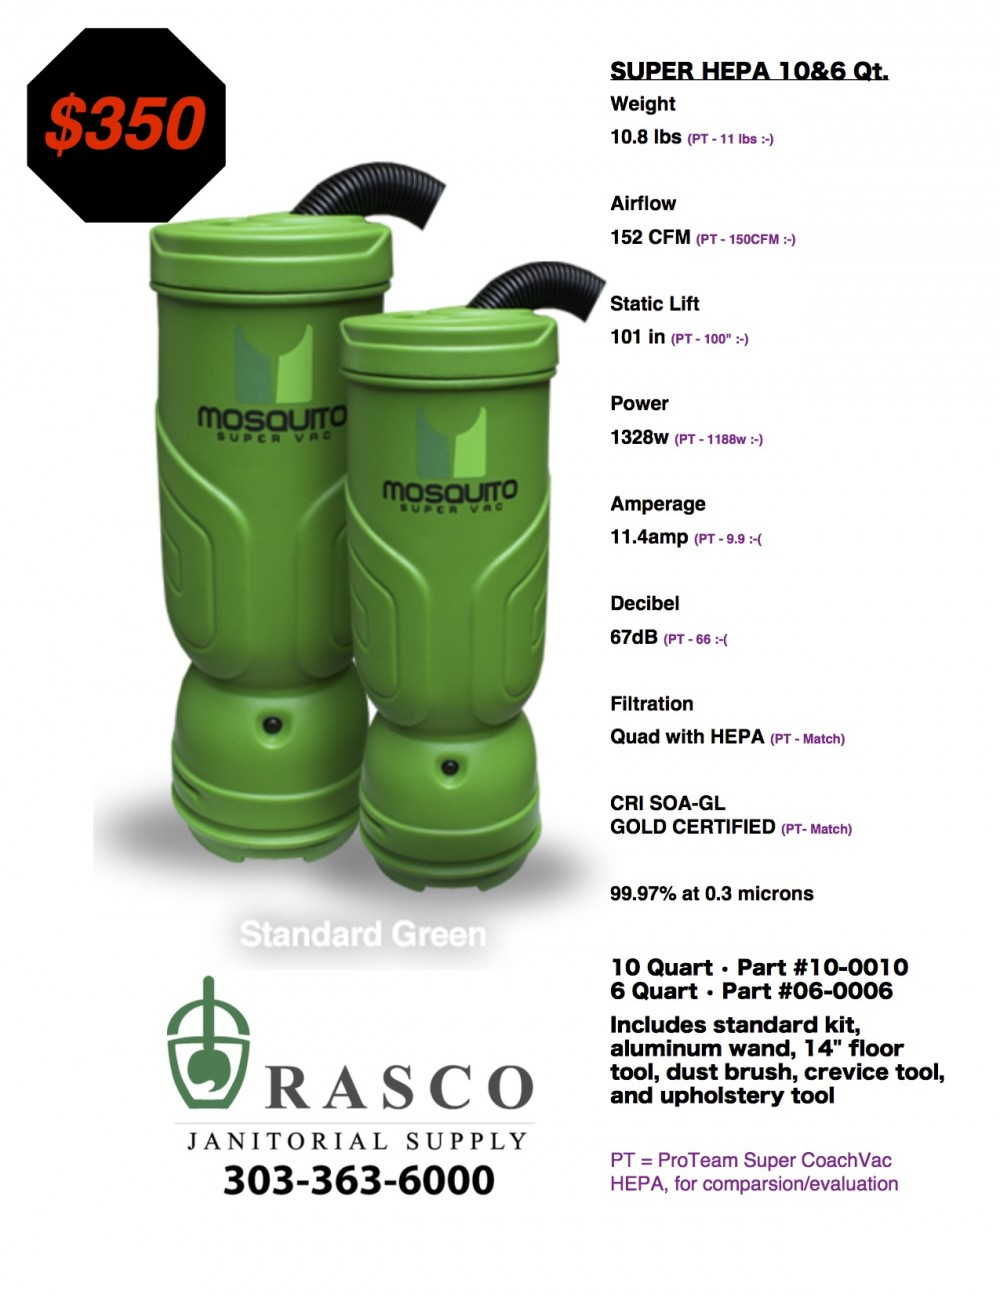 Rasco Equipment